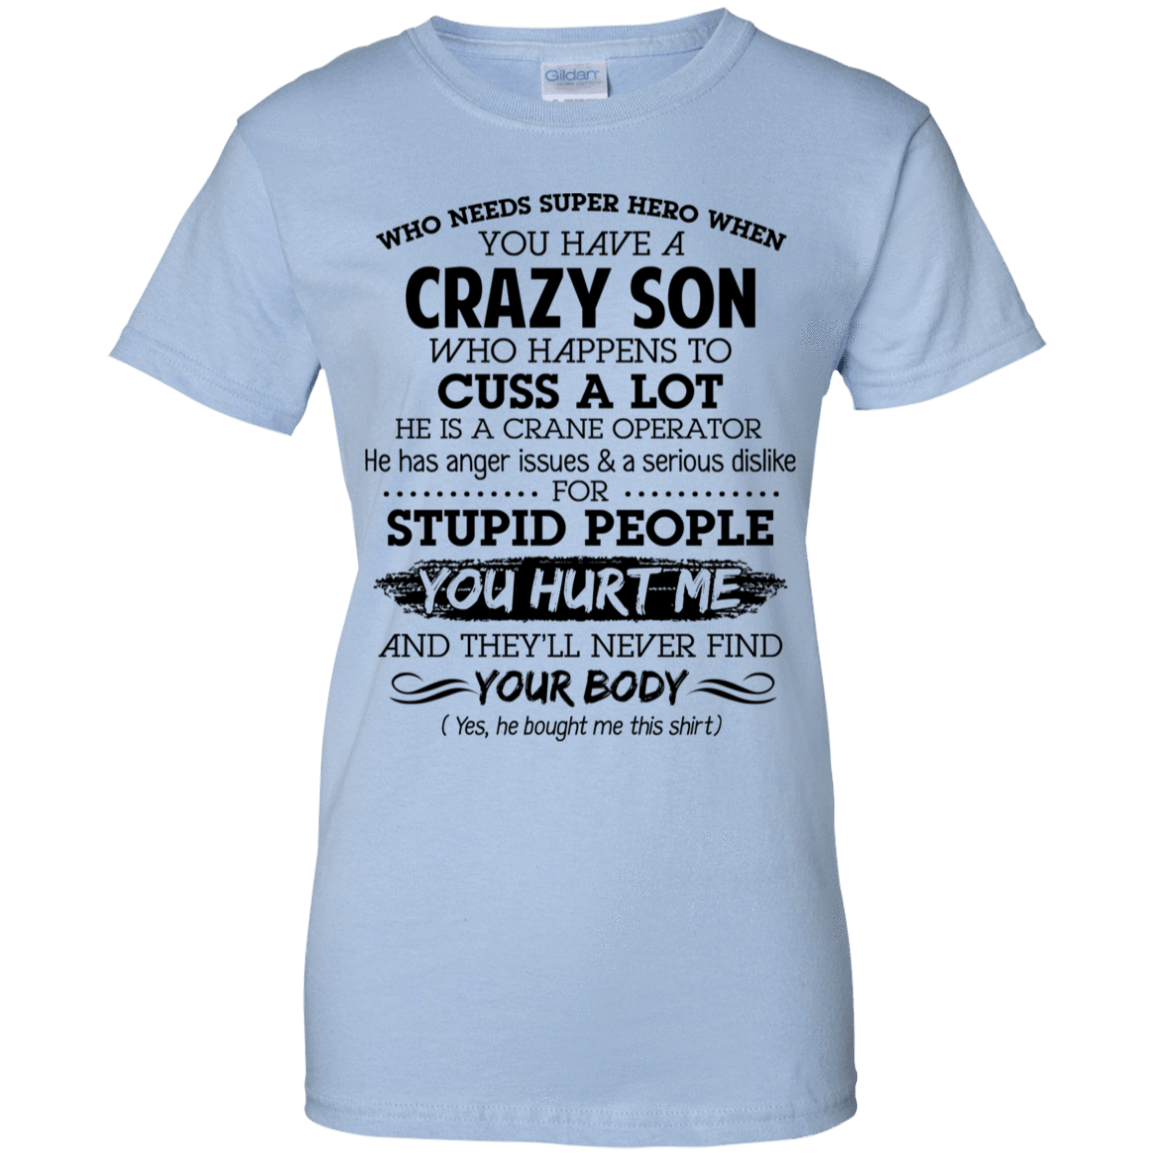 Have Crazy Son He Is A Crane Operator Mother's Day Gift 939-9257-73619455-44716 - Tee Ript